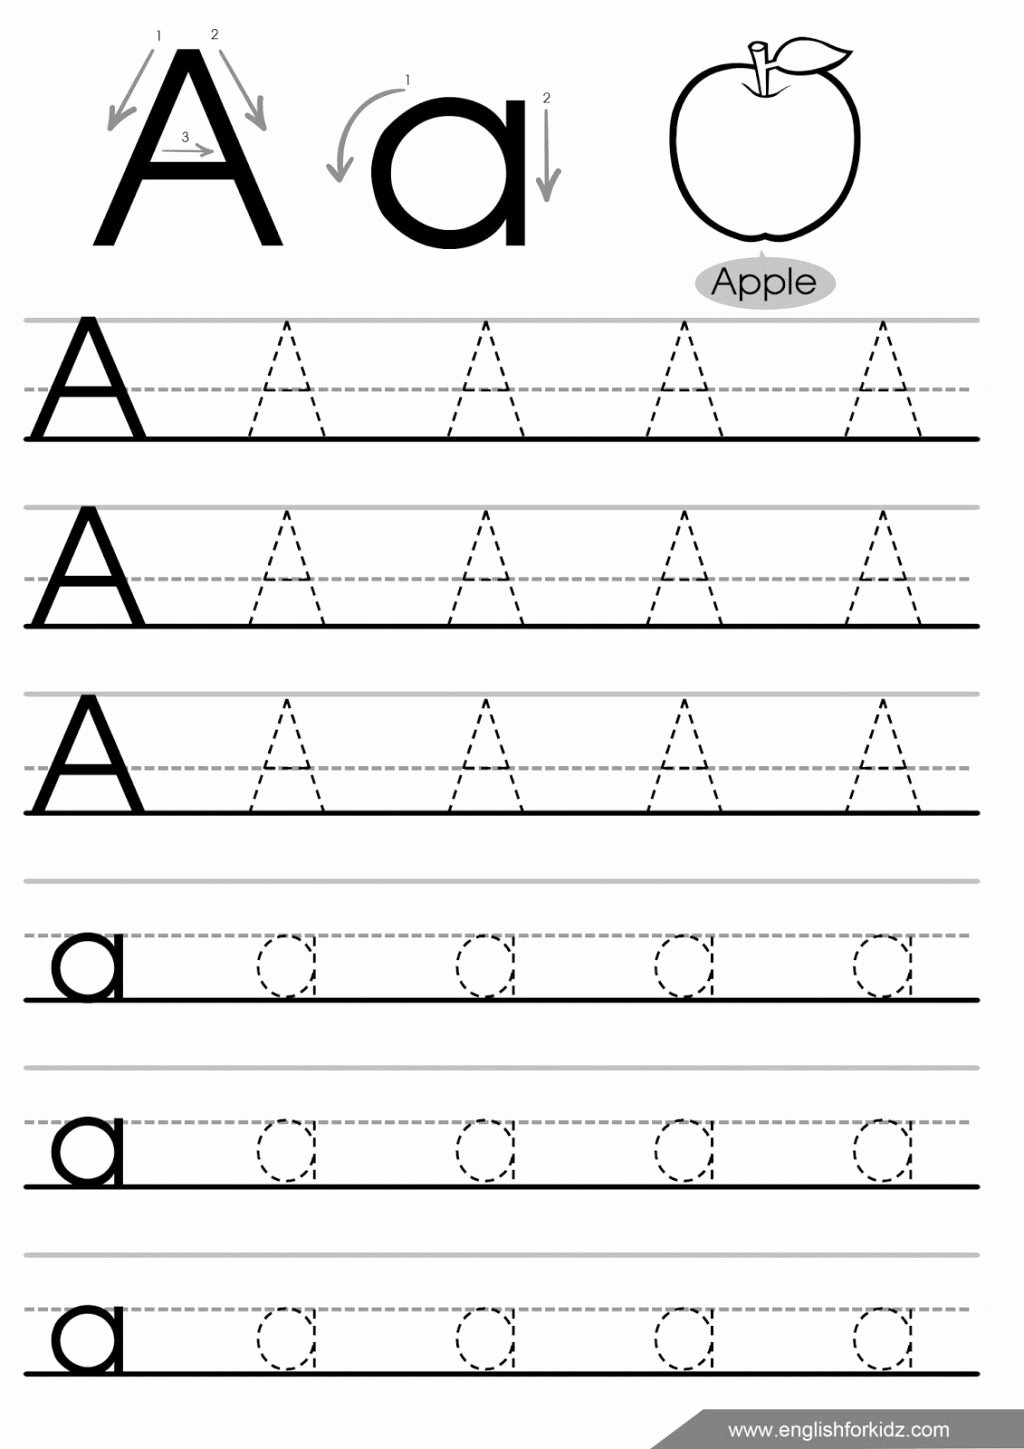 Alphabet Worksheets for Preschoolers Tracing Unique Worksheet Preschool Letter Worksheets Worksheet Ideas